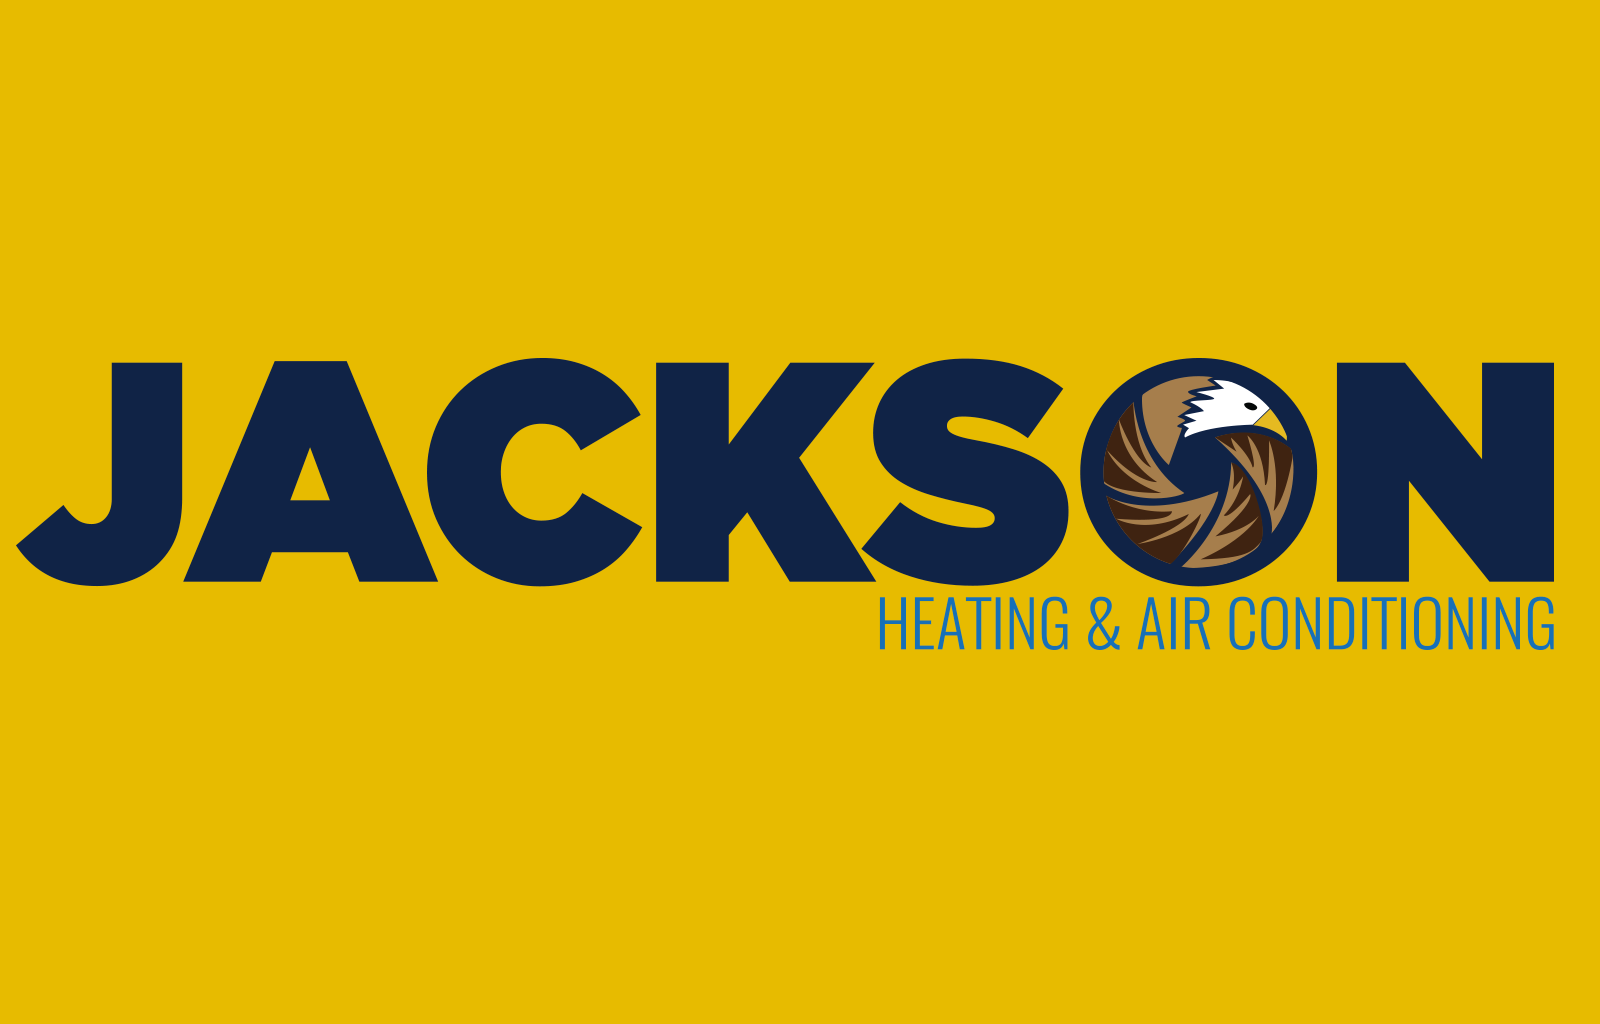 Jackson Heating & Air Conditioning